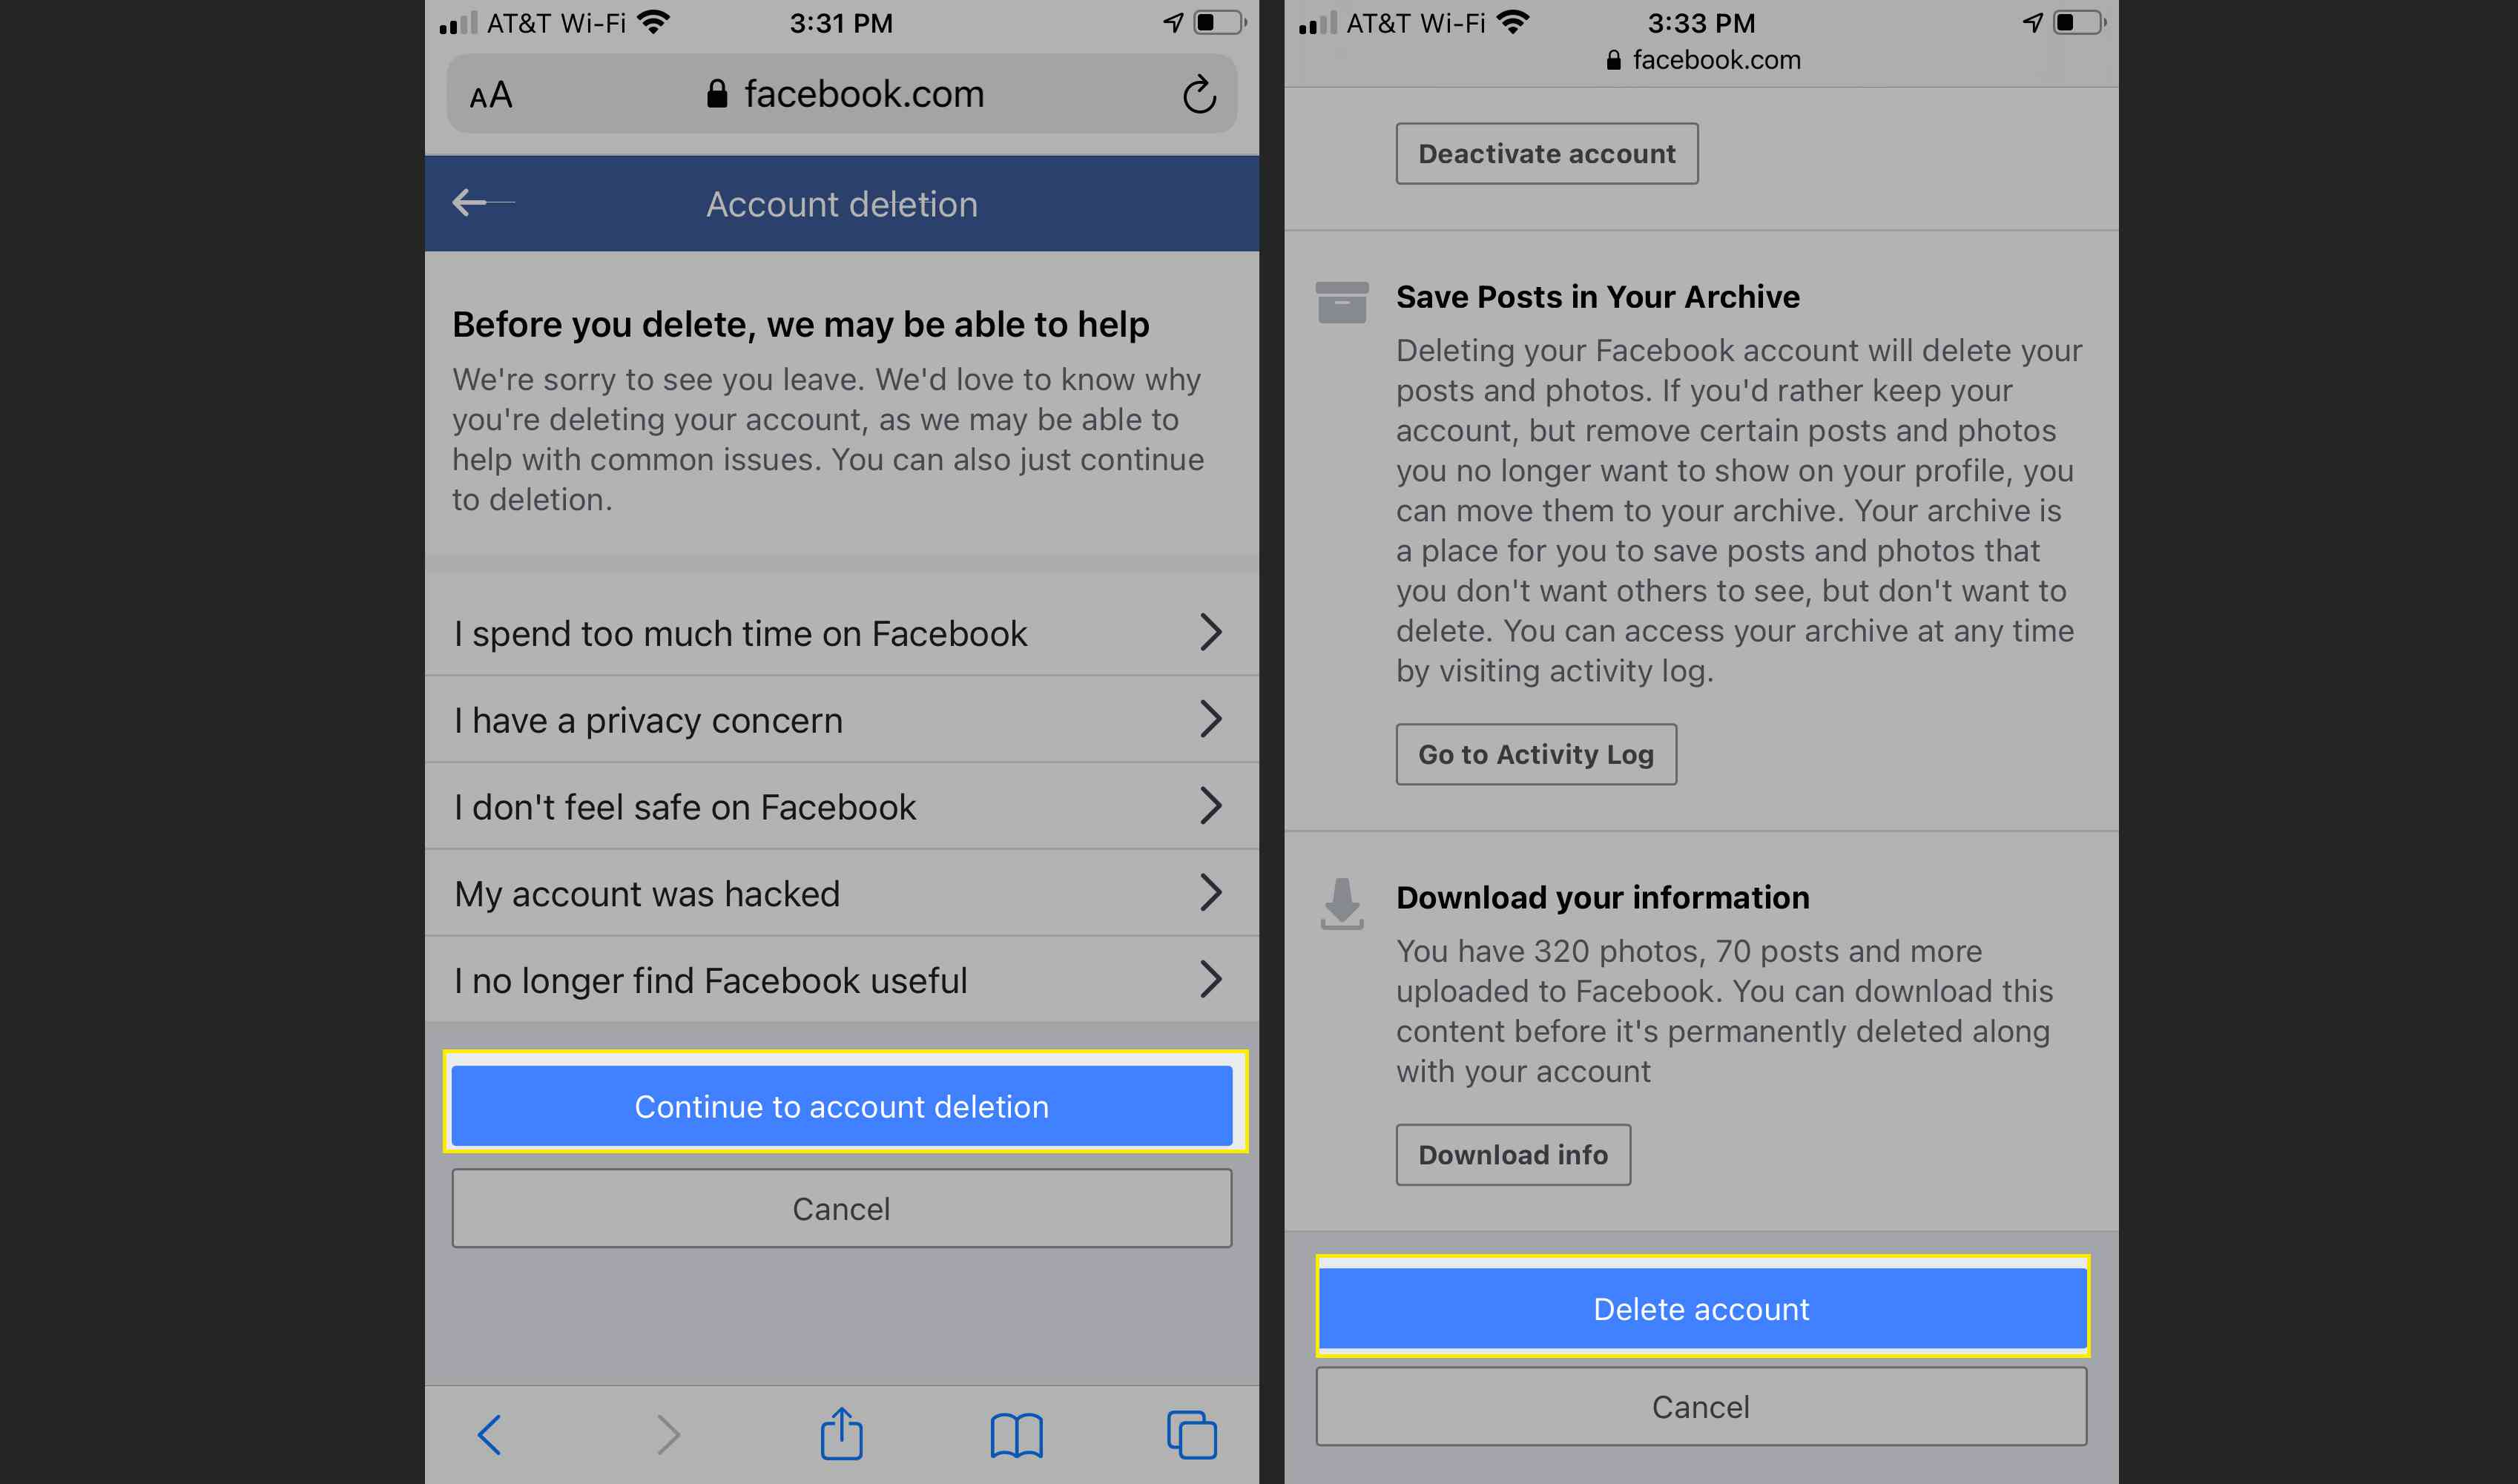 Facebook in Safari on iPhone with Continue to Account Deletion and Delete Account highlighted